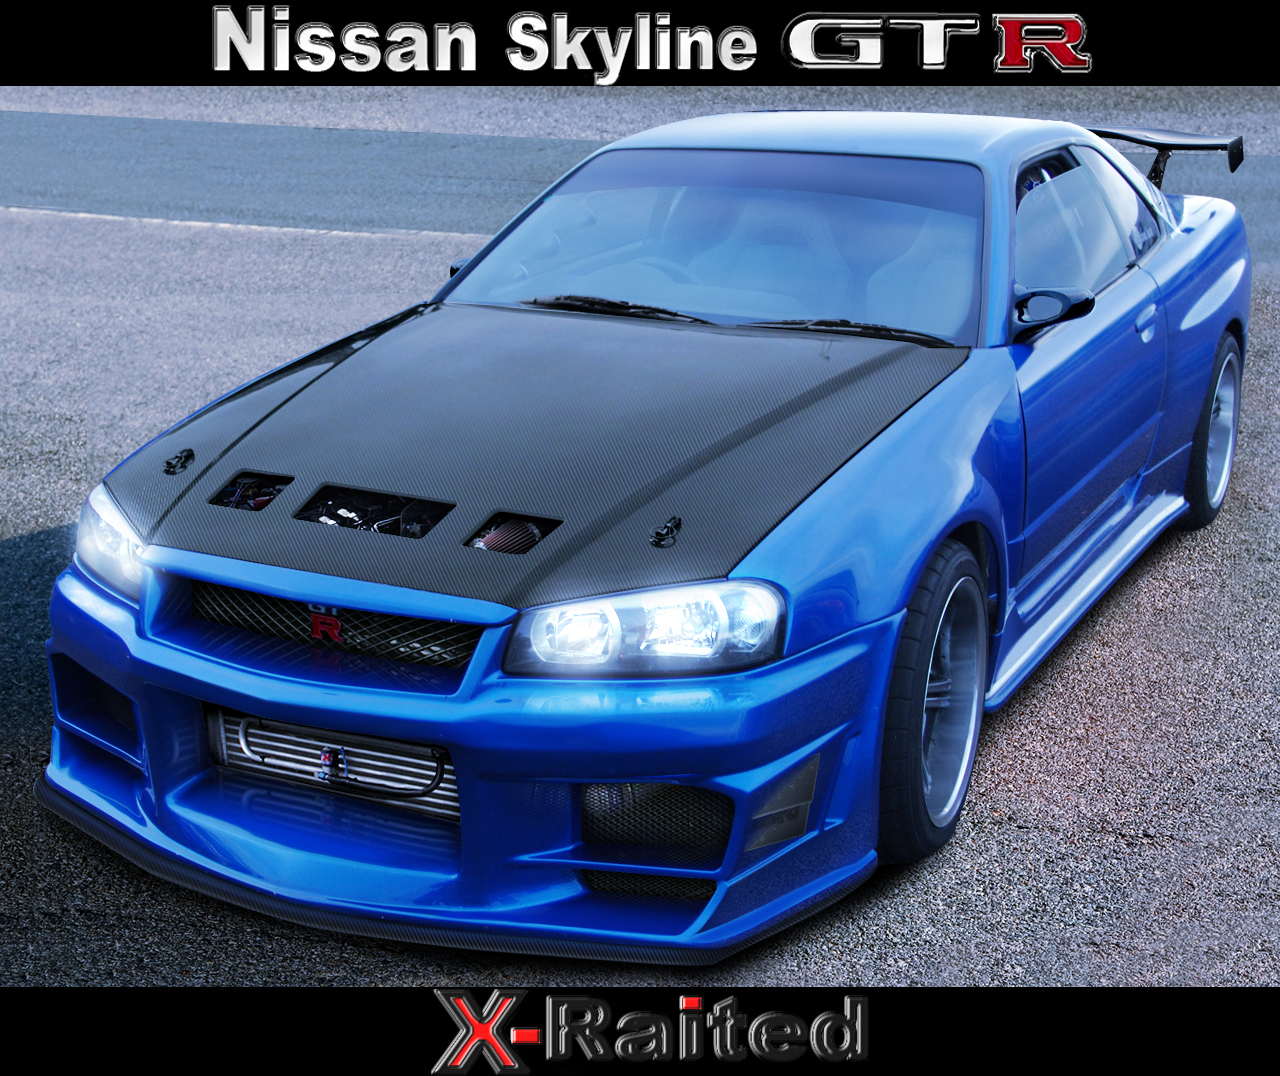 New Best Car: Nissan Skyline Gtr